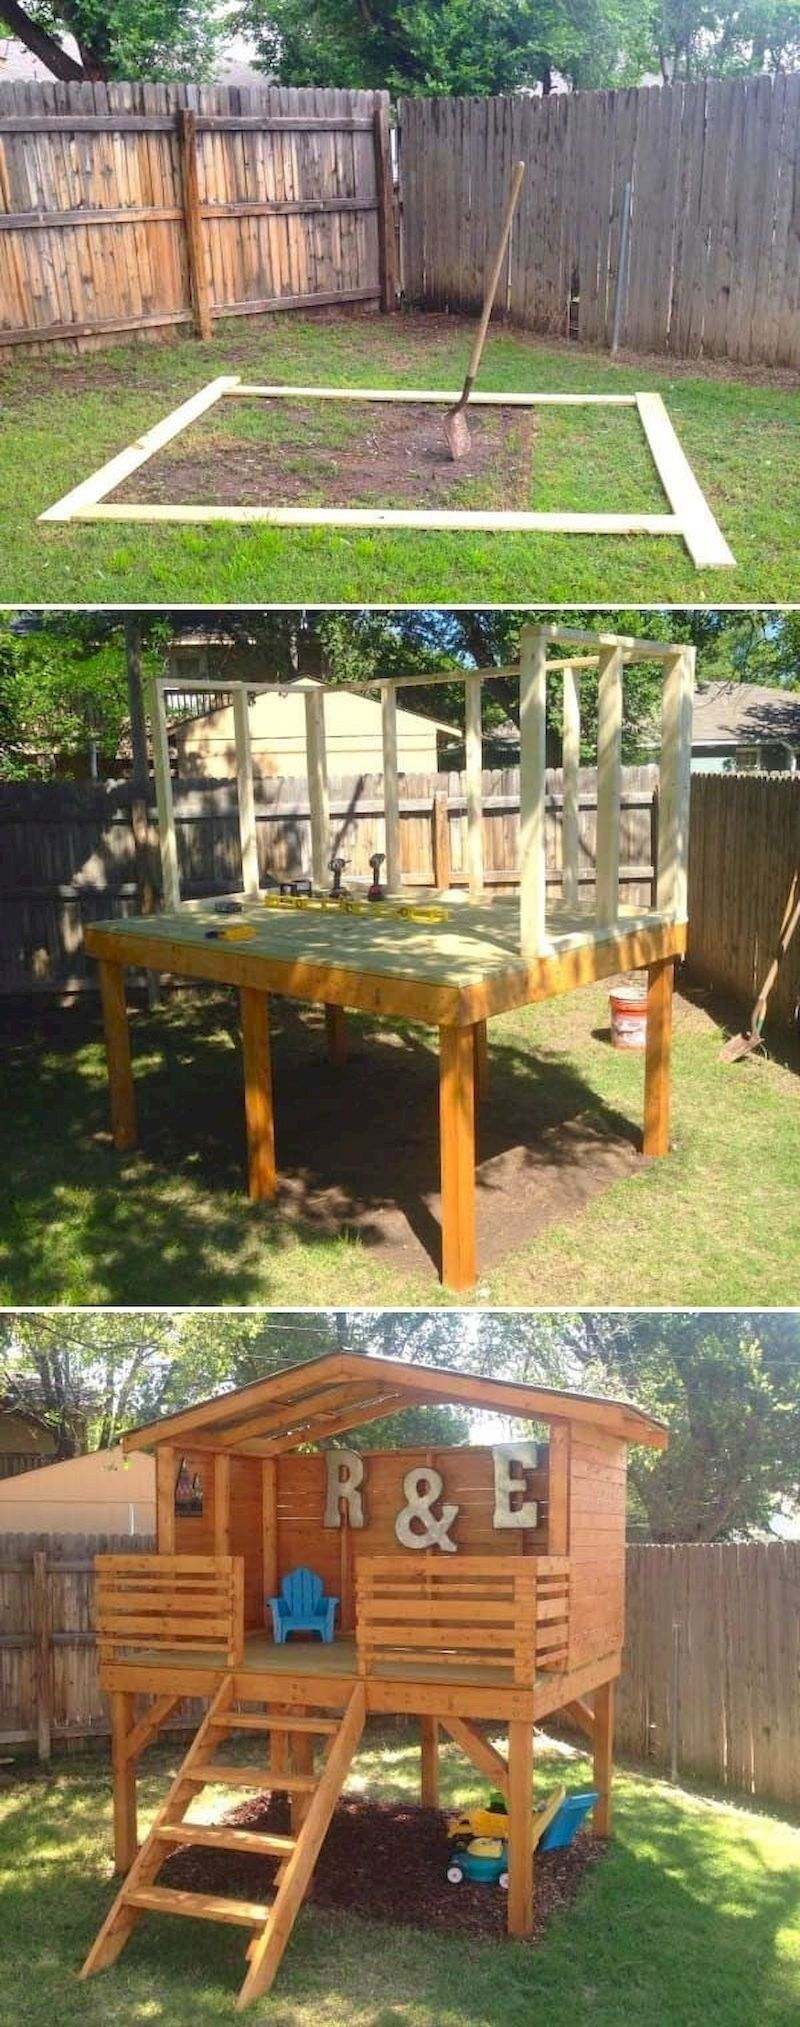 39 Budget-Friendly Projects for A Kid's Play Area ...